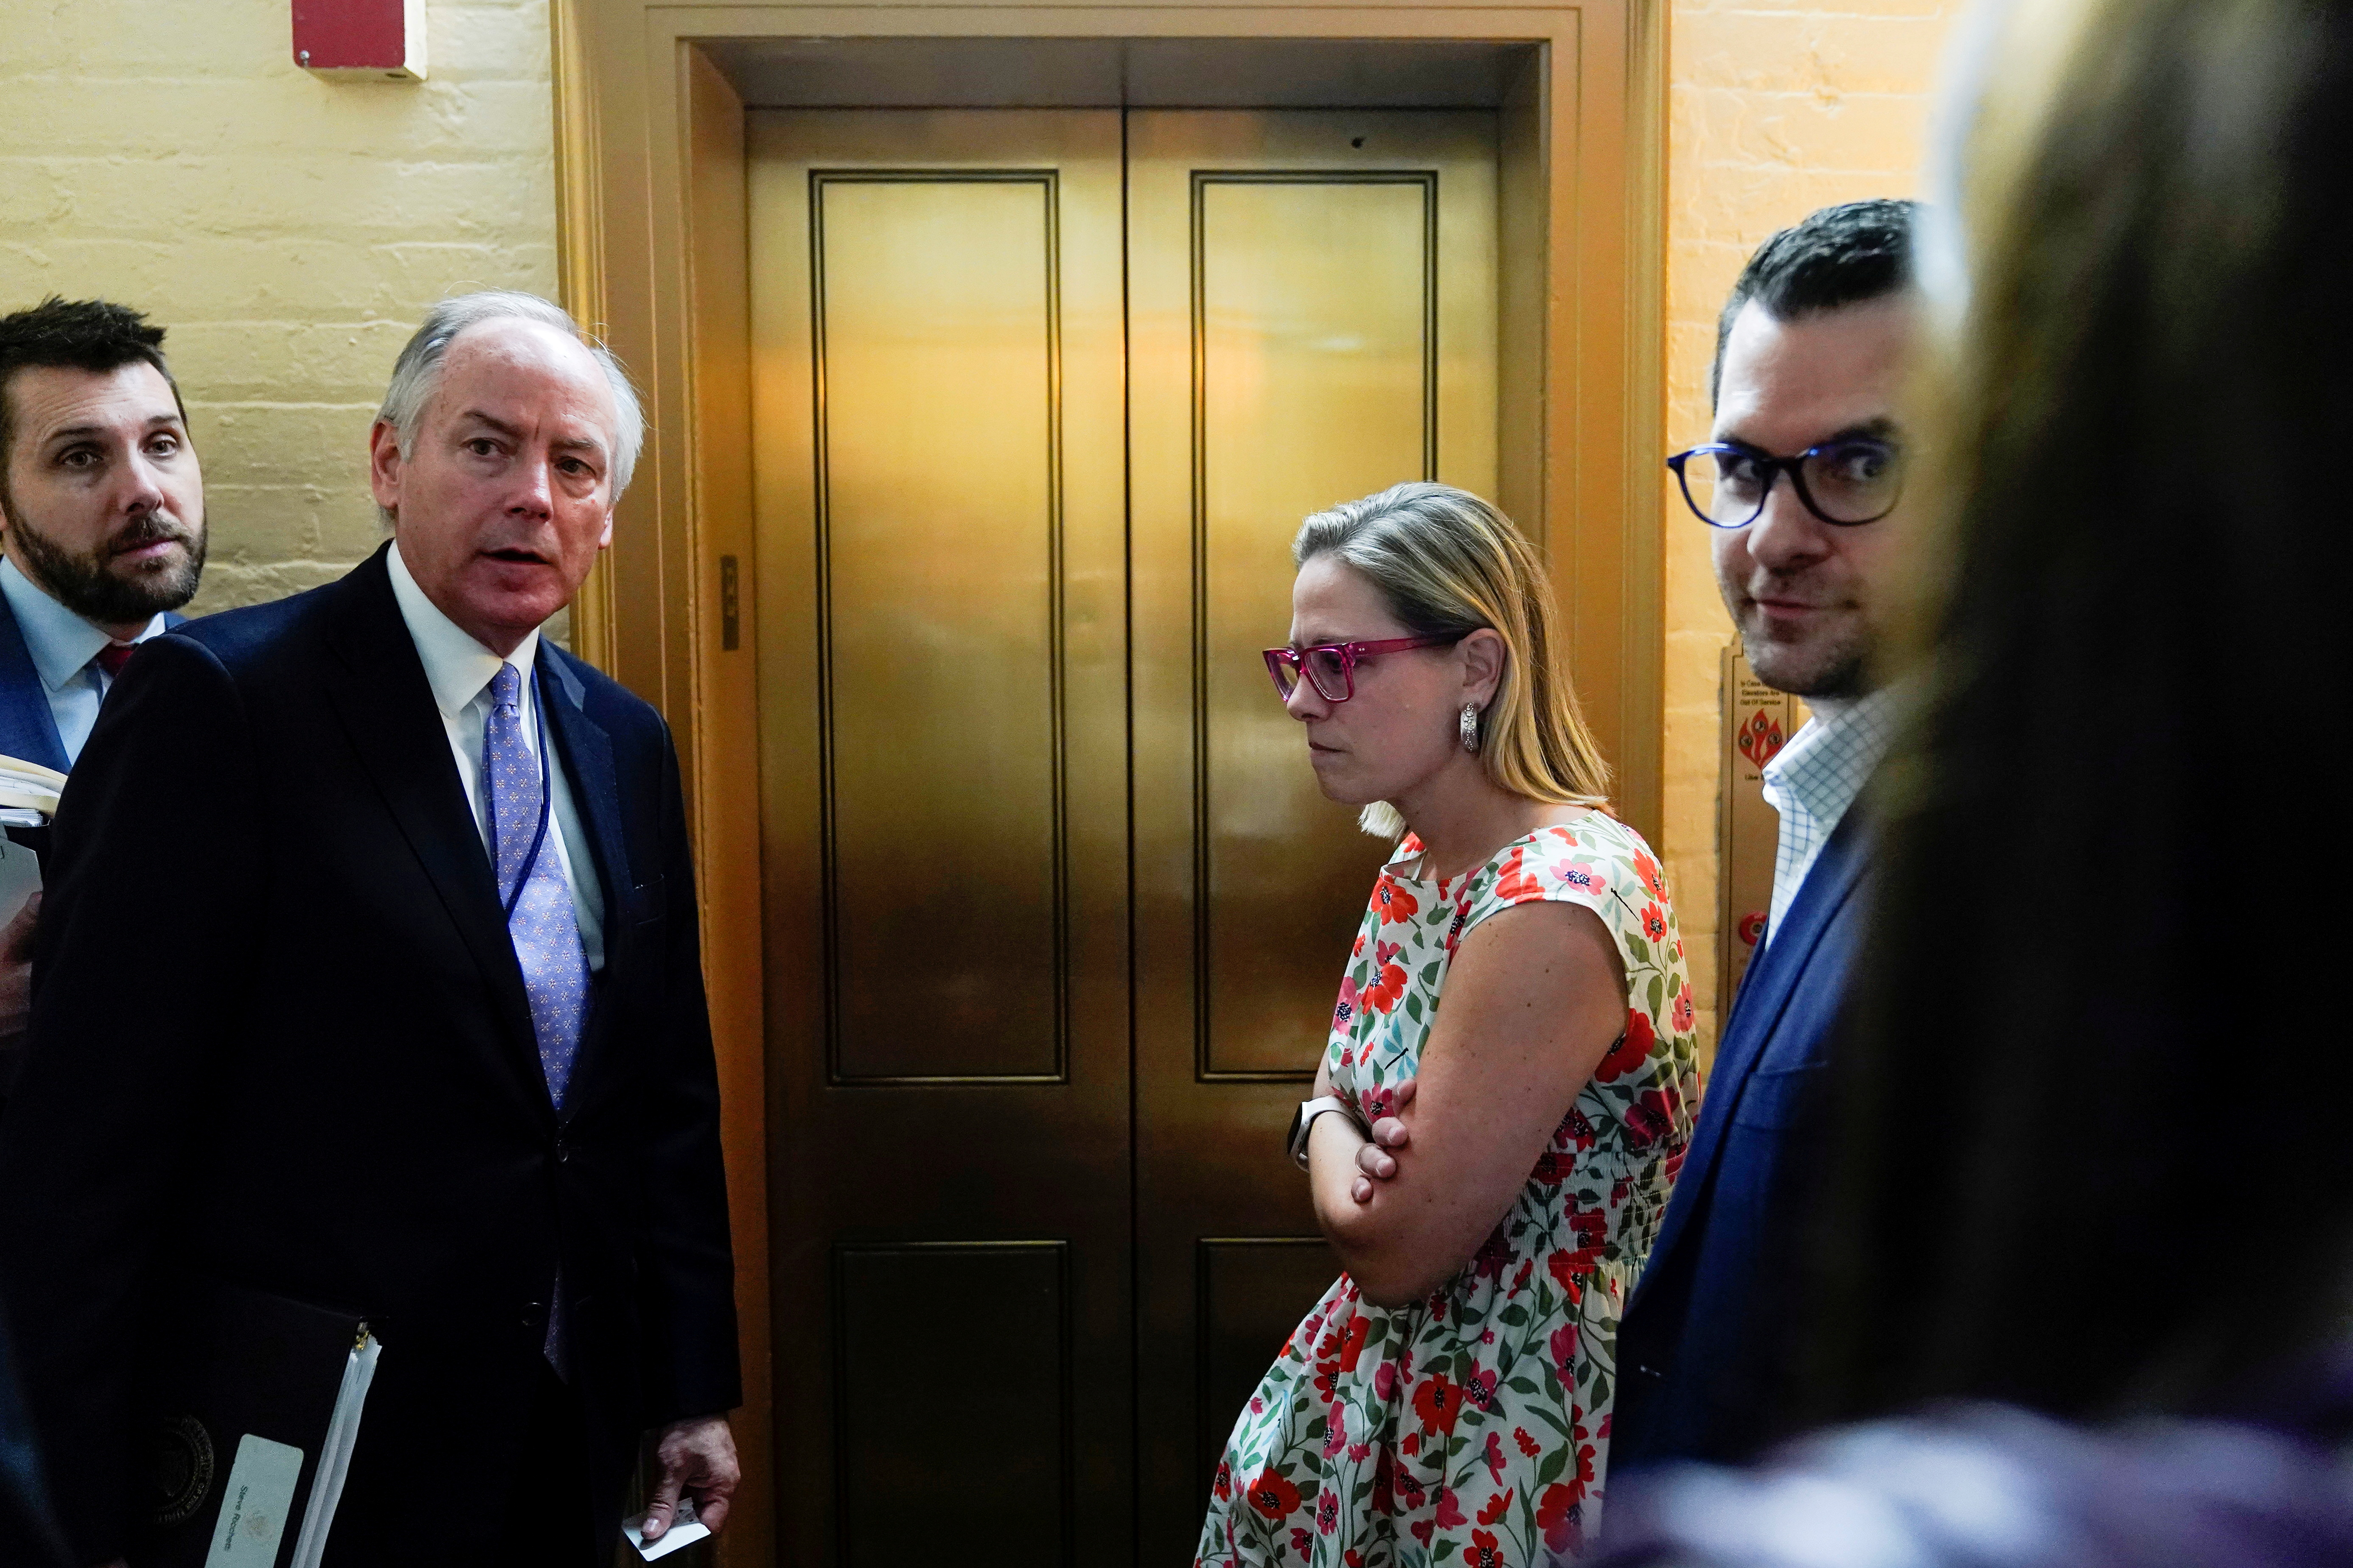 White House Counselor Steve Ricchetti and Senator Kyrsten Sinema (D-AZ) stand together after a bipartisan meeting on infrastructure on Capitol Hill in Washington, U.S., June 22, 2021.      REUTERS/Joshua Roberts/File Photo